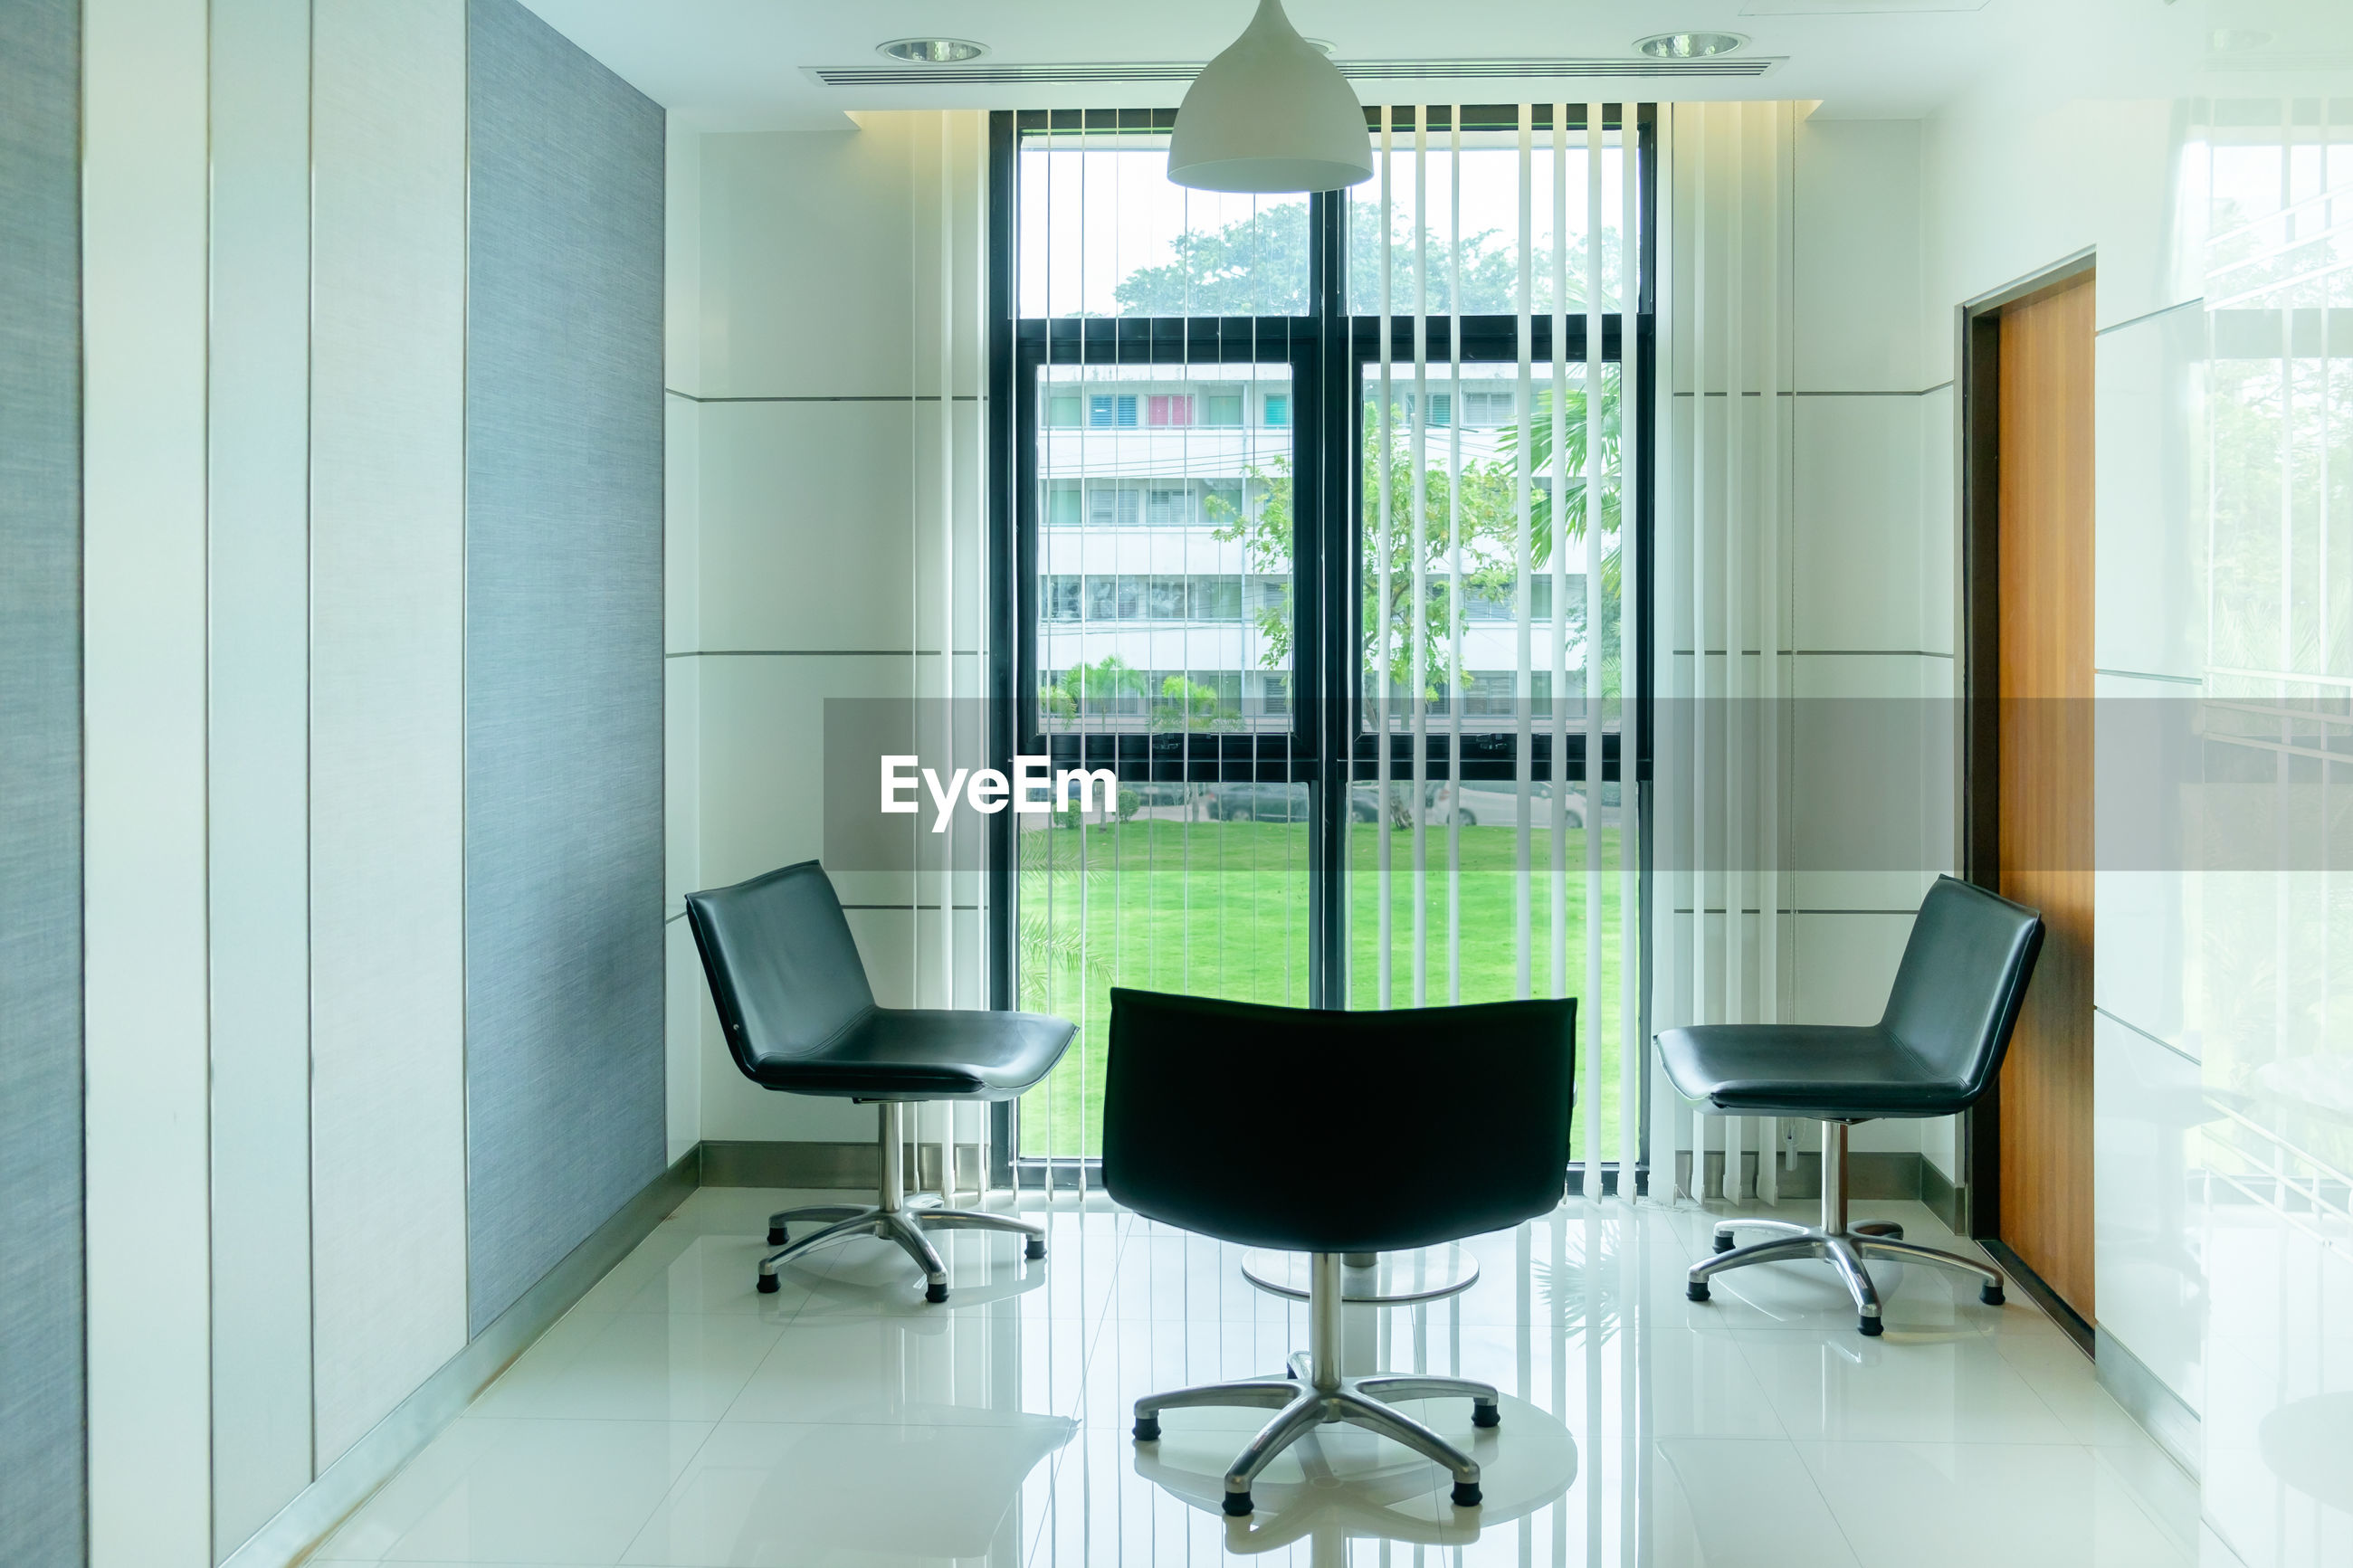 Chairs by window in office